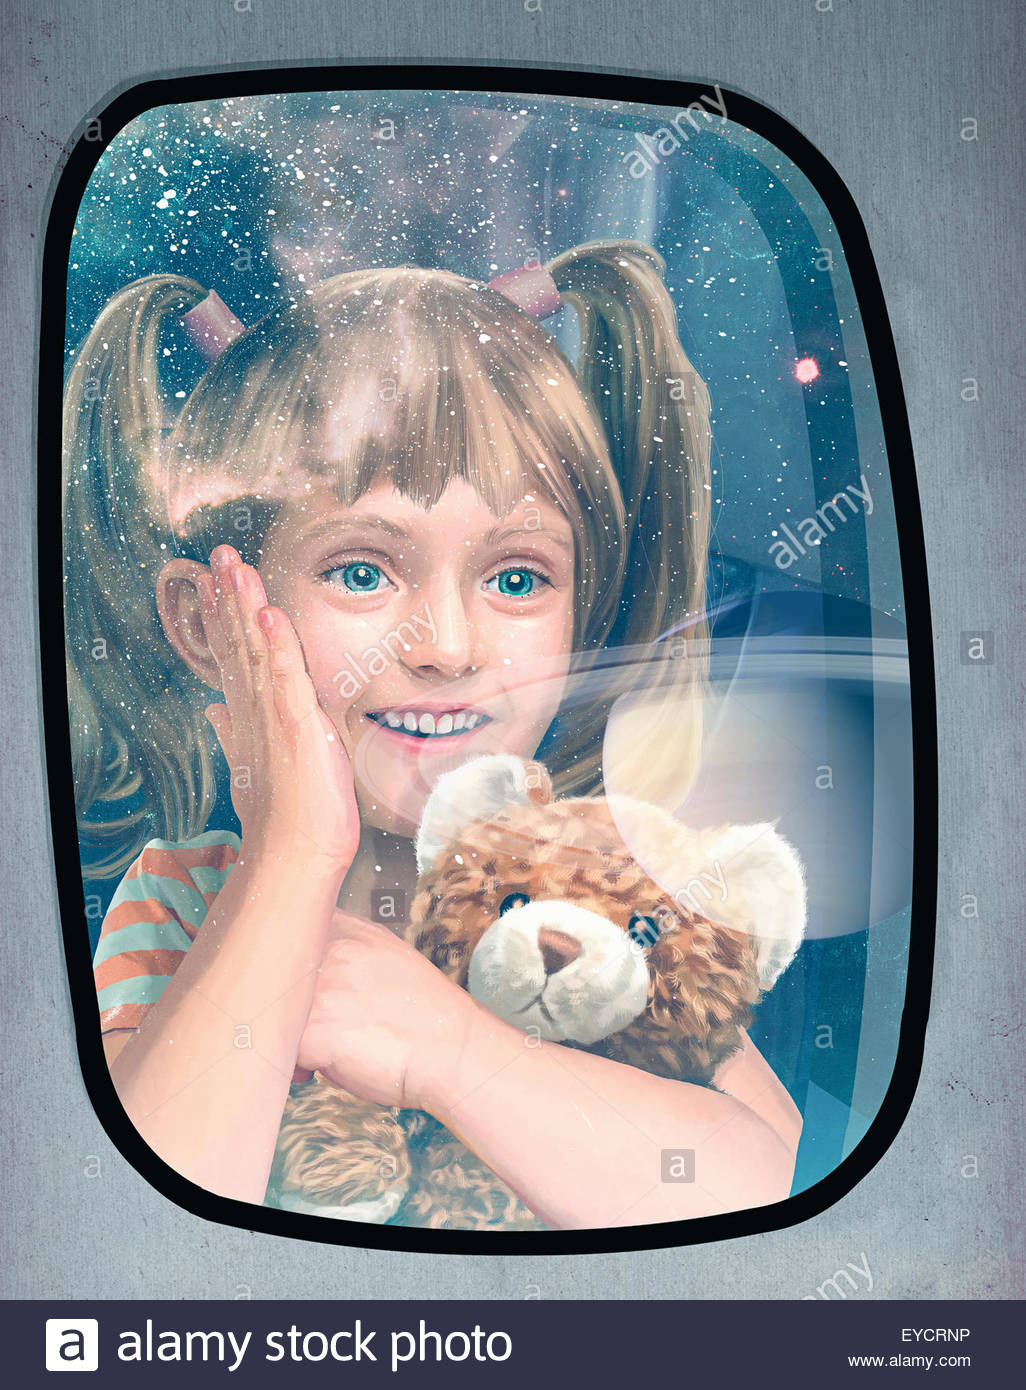 Excited child looking out of window at planets on futuristic space flight Stock Photo